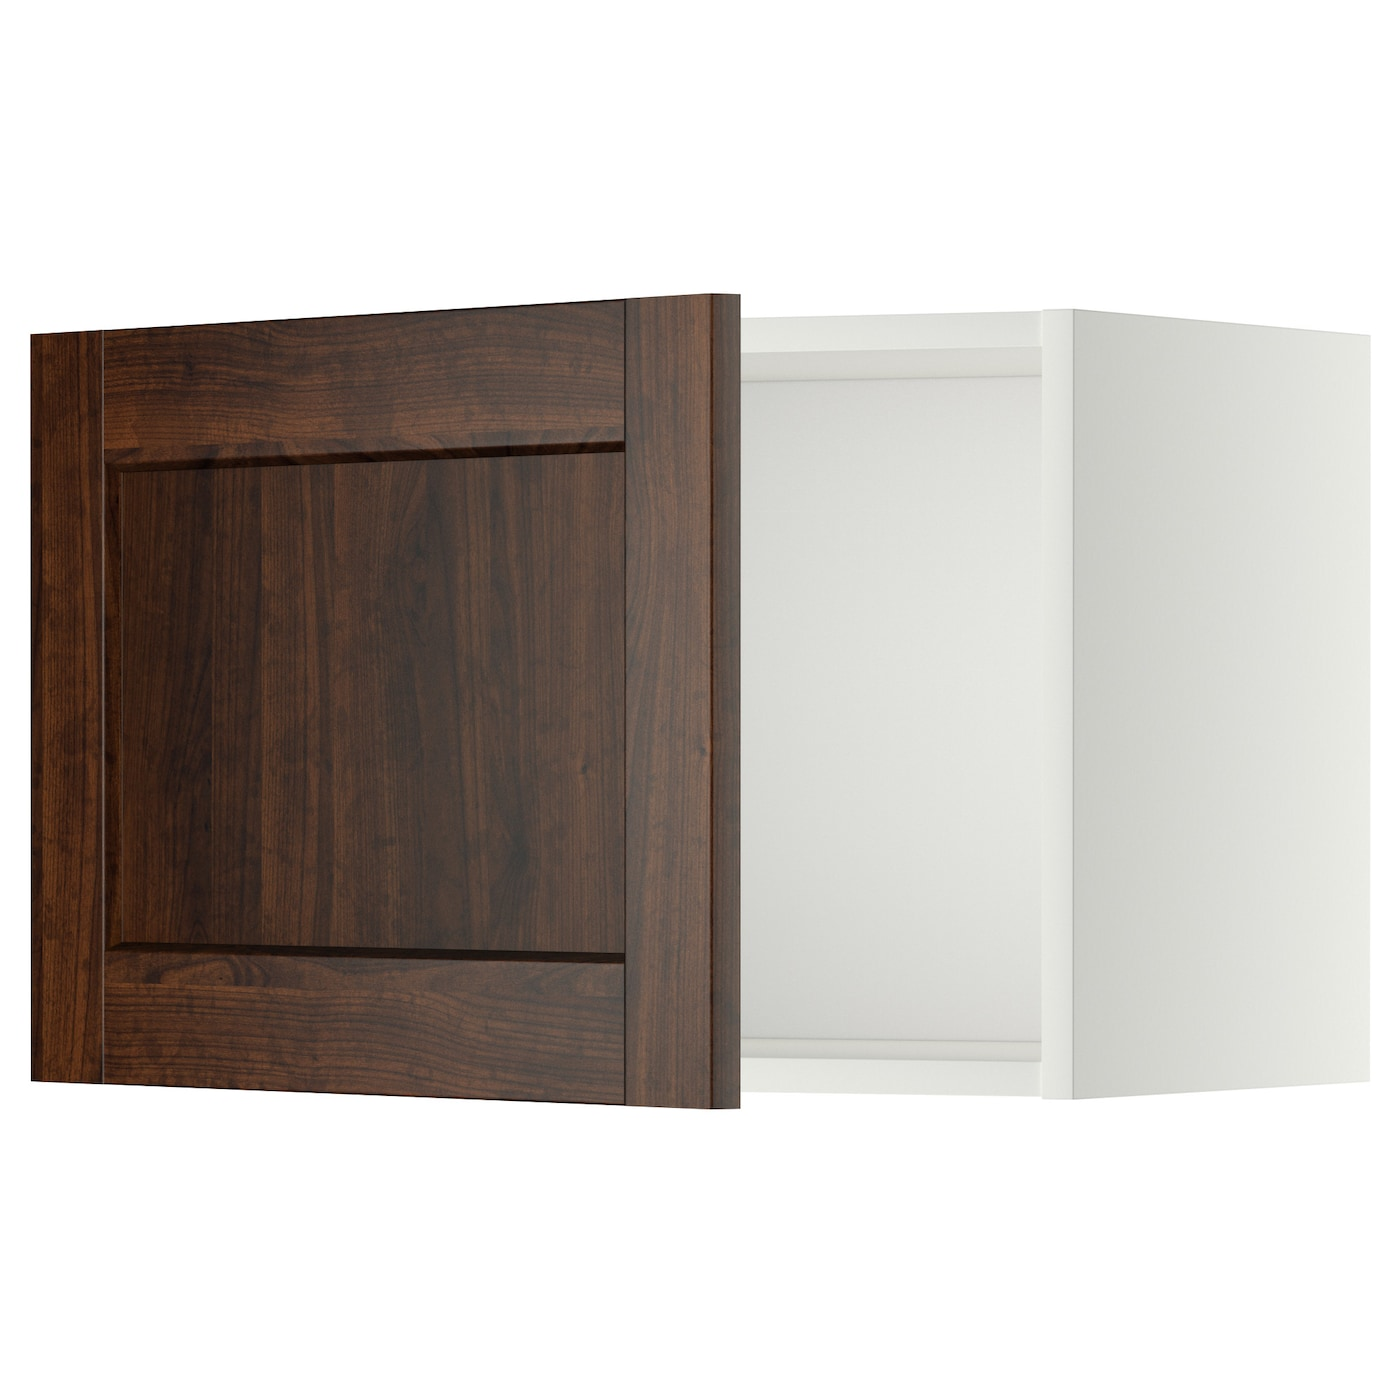 metod wall cabinet white edserum brown 60x40 cm ikea. Black Bedroom Furniture Sets. Home Design Ideas